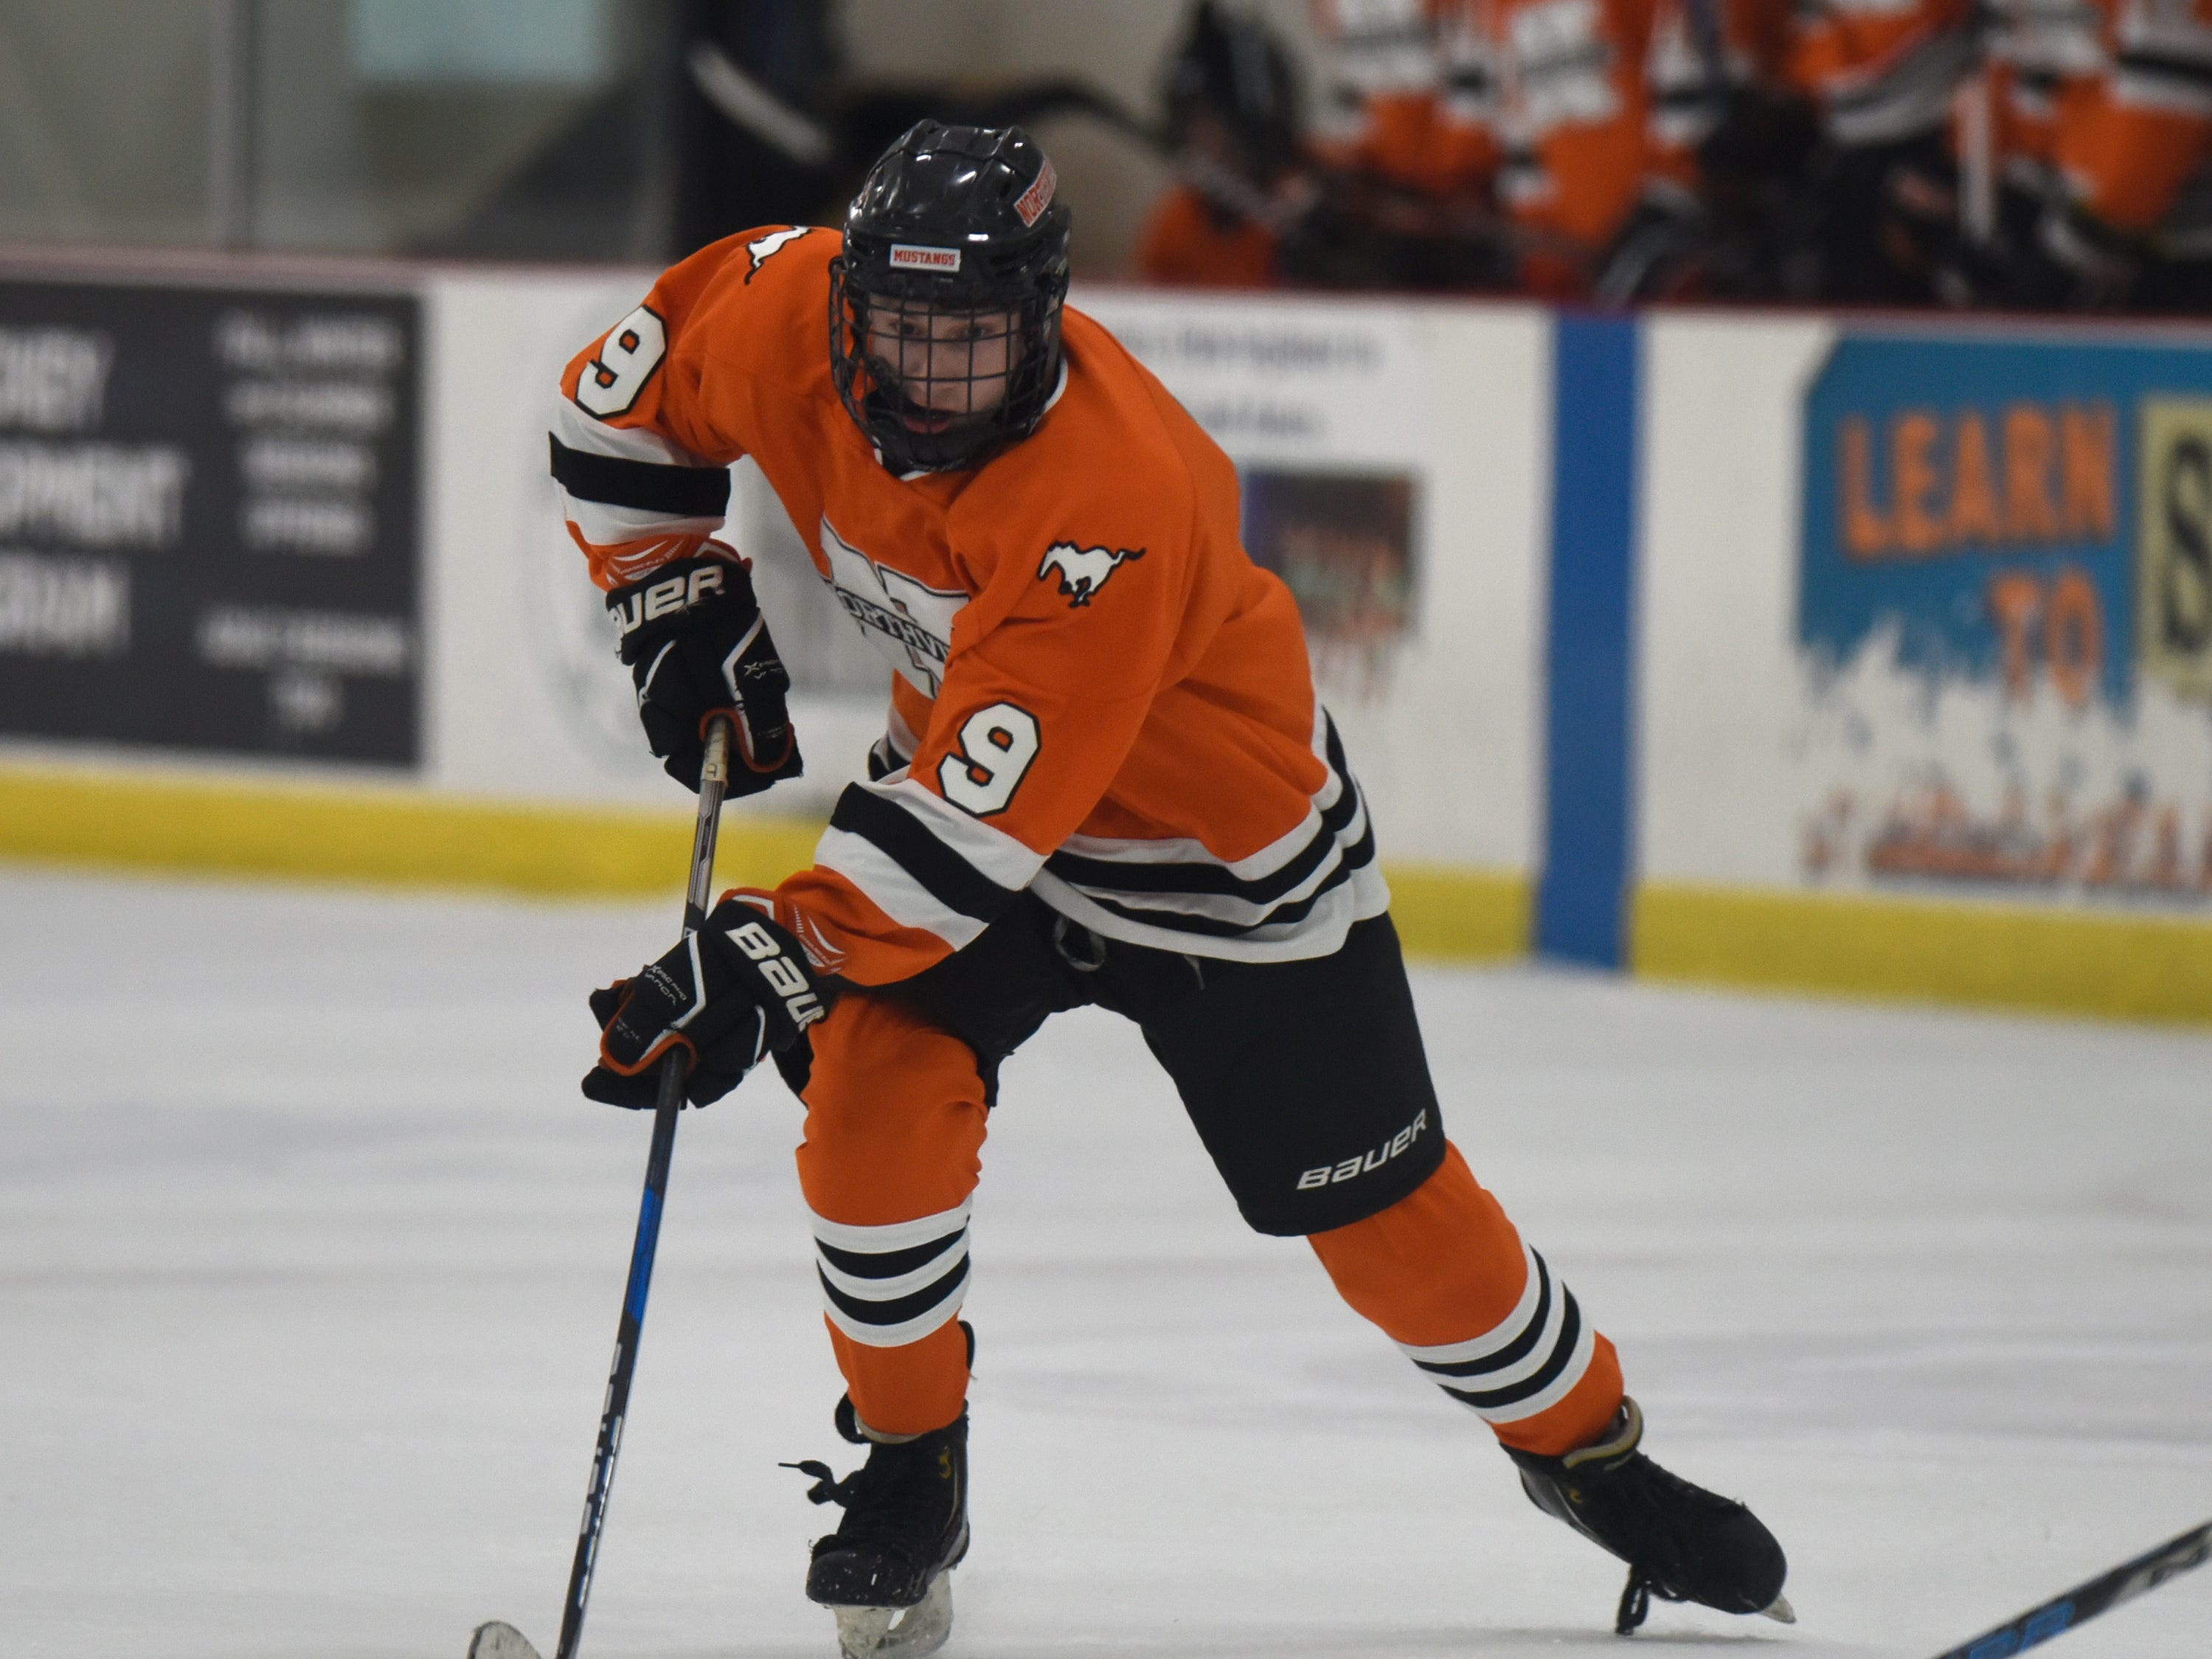 Northville forward Brett Dann (9) during a KLAA West match up between rivals Novi and Northville played at Novi Ice Arena Nov. 20, 2018.